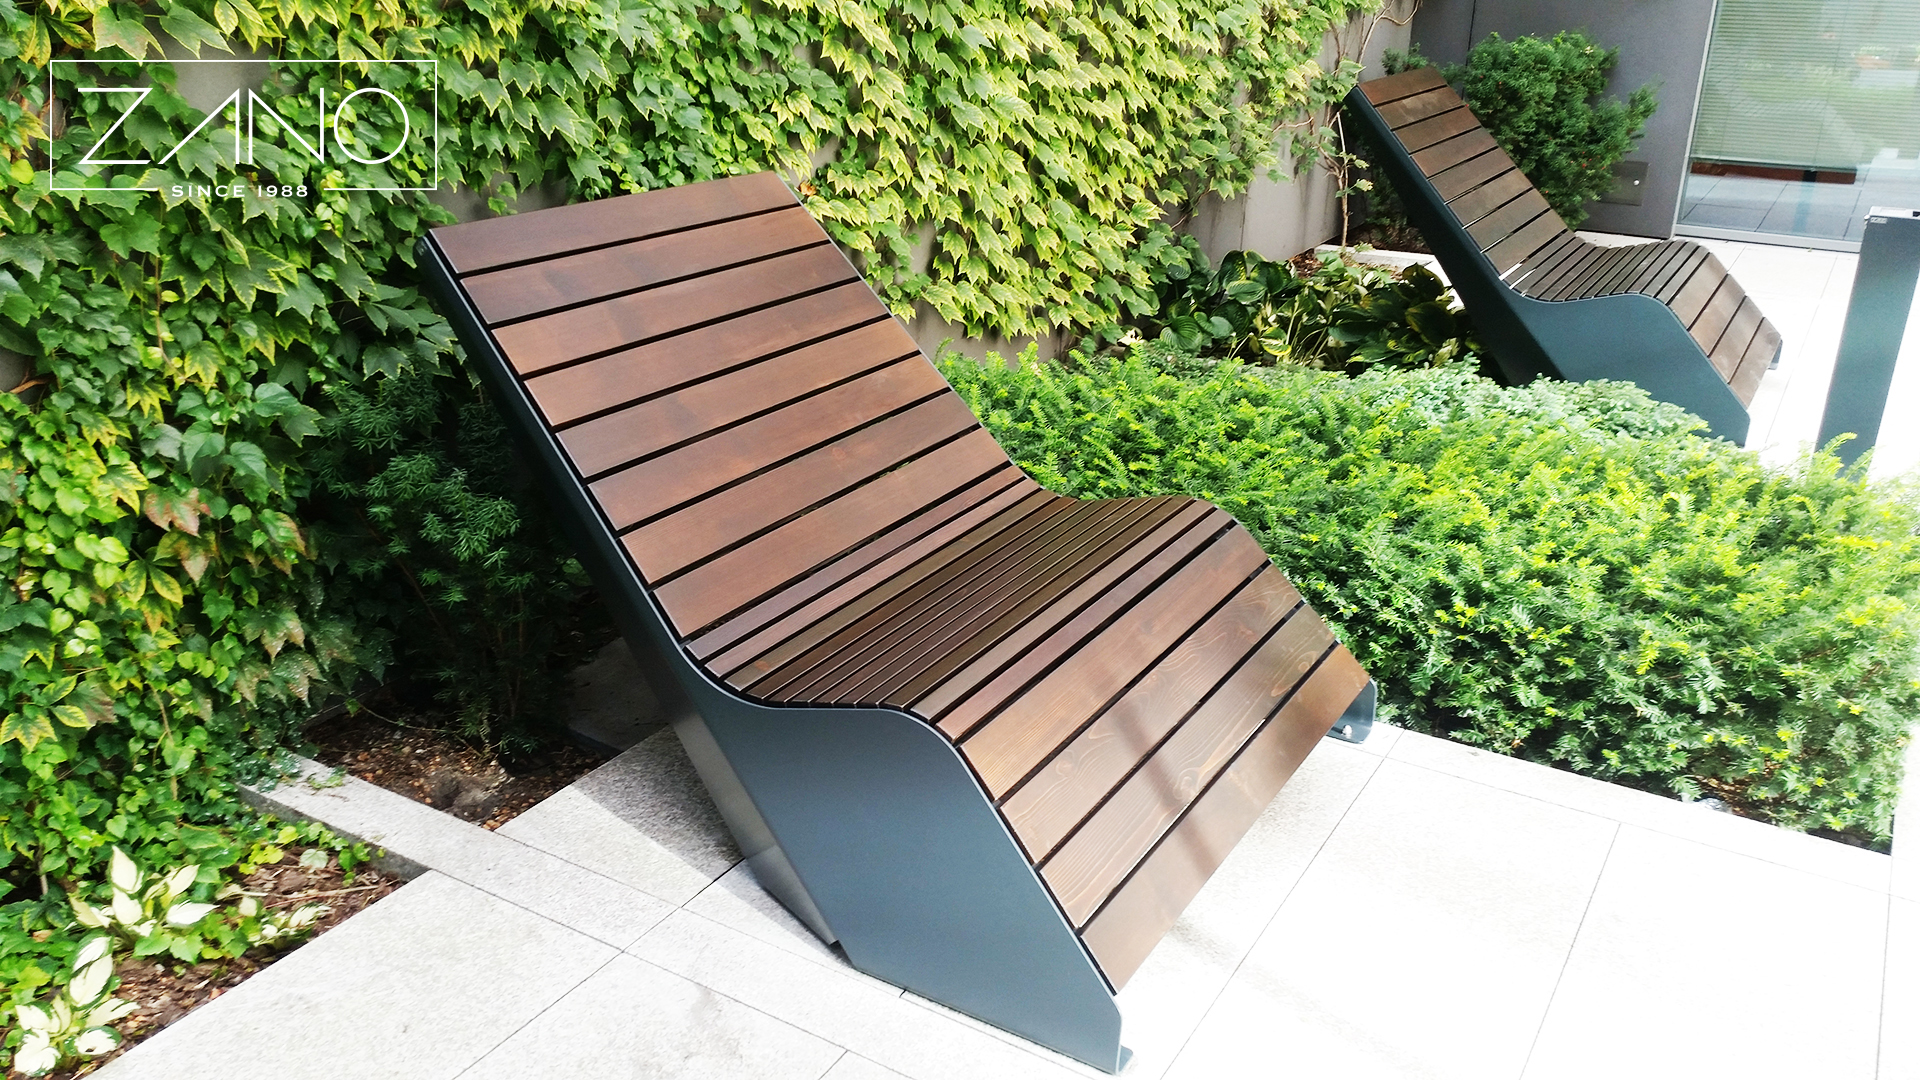 duo-lounger-wood-steel-zano-street-furniture